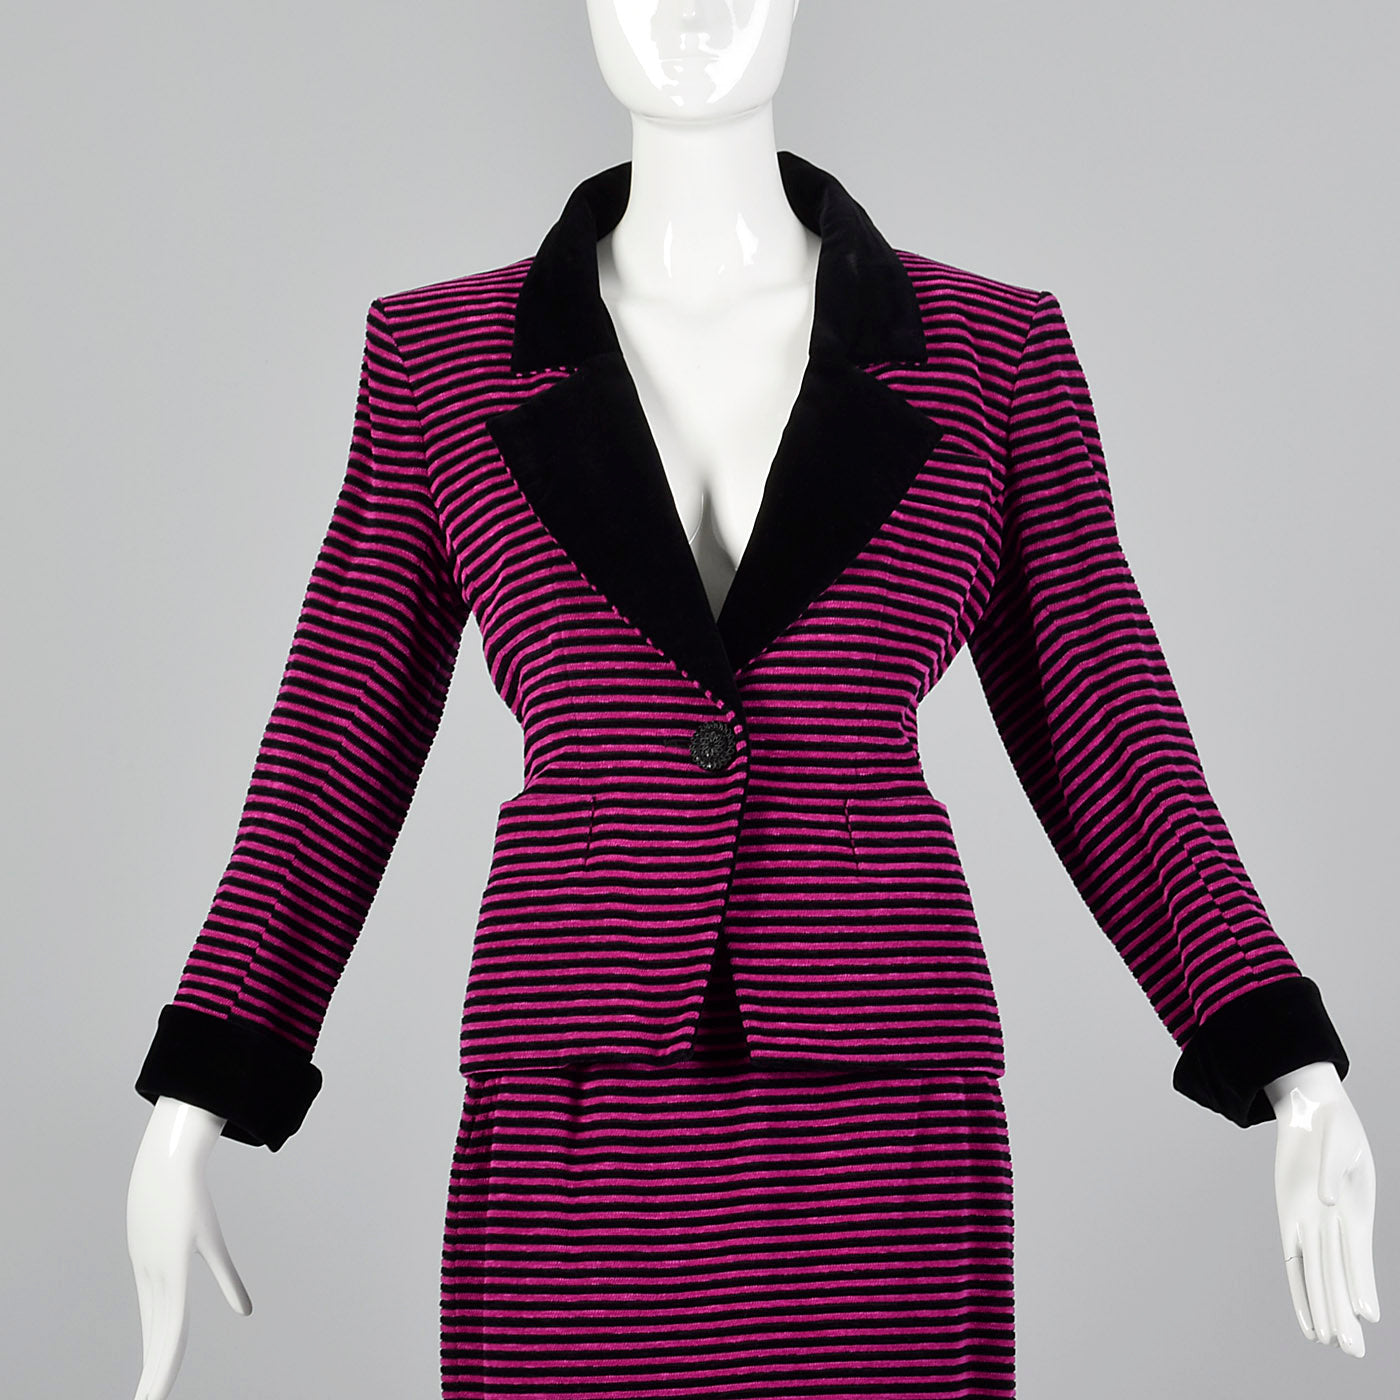 Yves Saint Laurent Rive Gauche Black & Fuchsia Striped Corduroy Skirt Suit